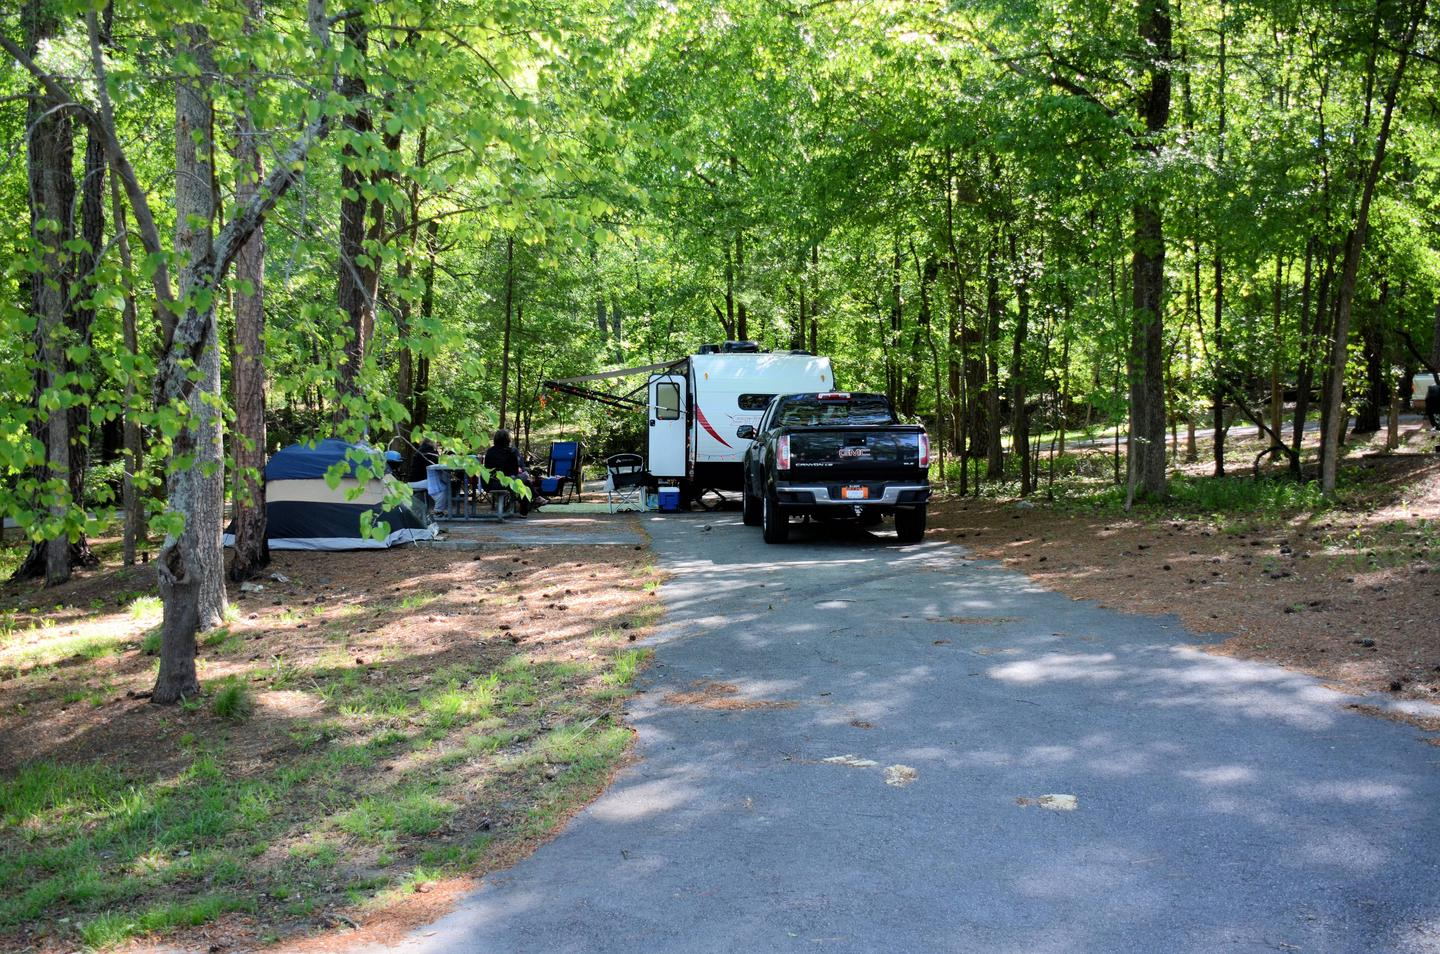 Driveway (pull-thru), awning-side clearance.McKinney Campground, campsite 31.